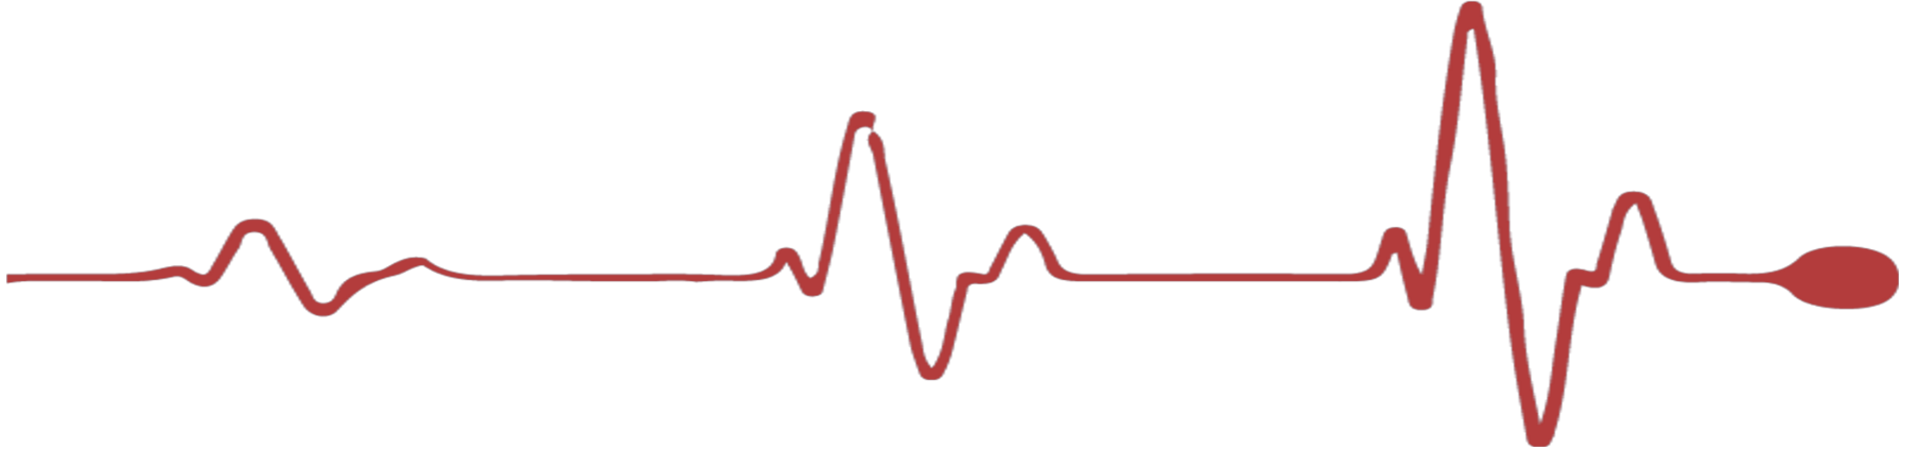 Heartbeat with heart clipart png library Heartbeat PNG HD Transparent Heartbeat HD.PNG Images. | PlusPNG png library